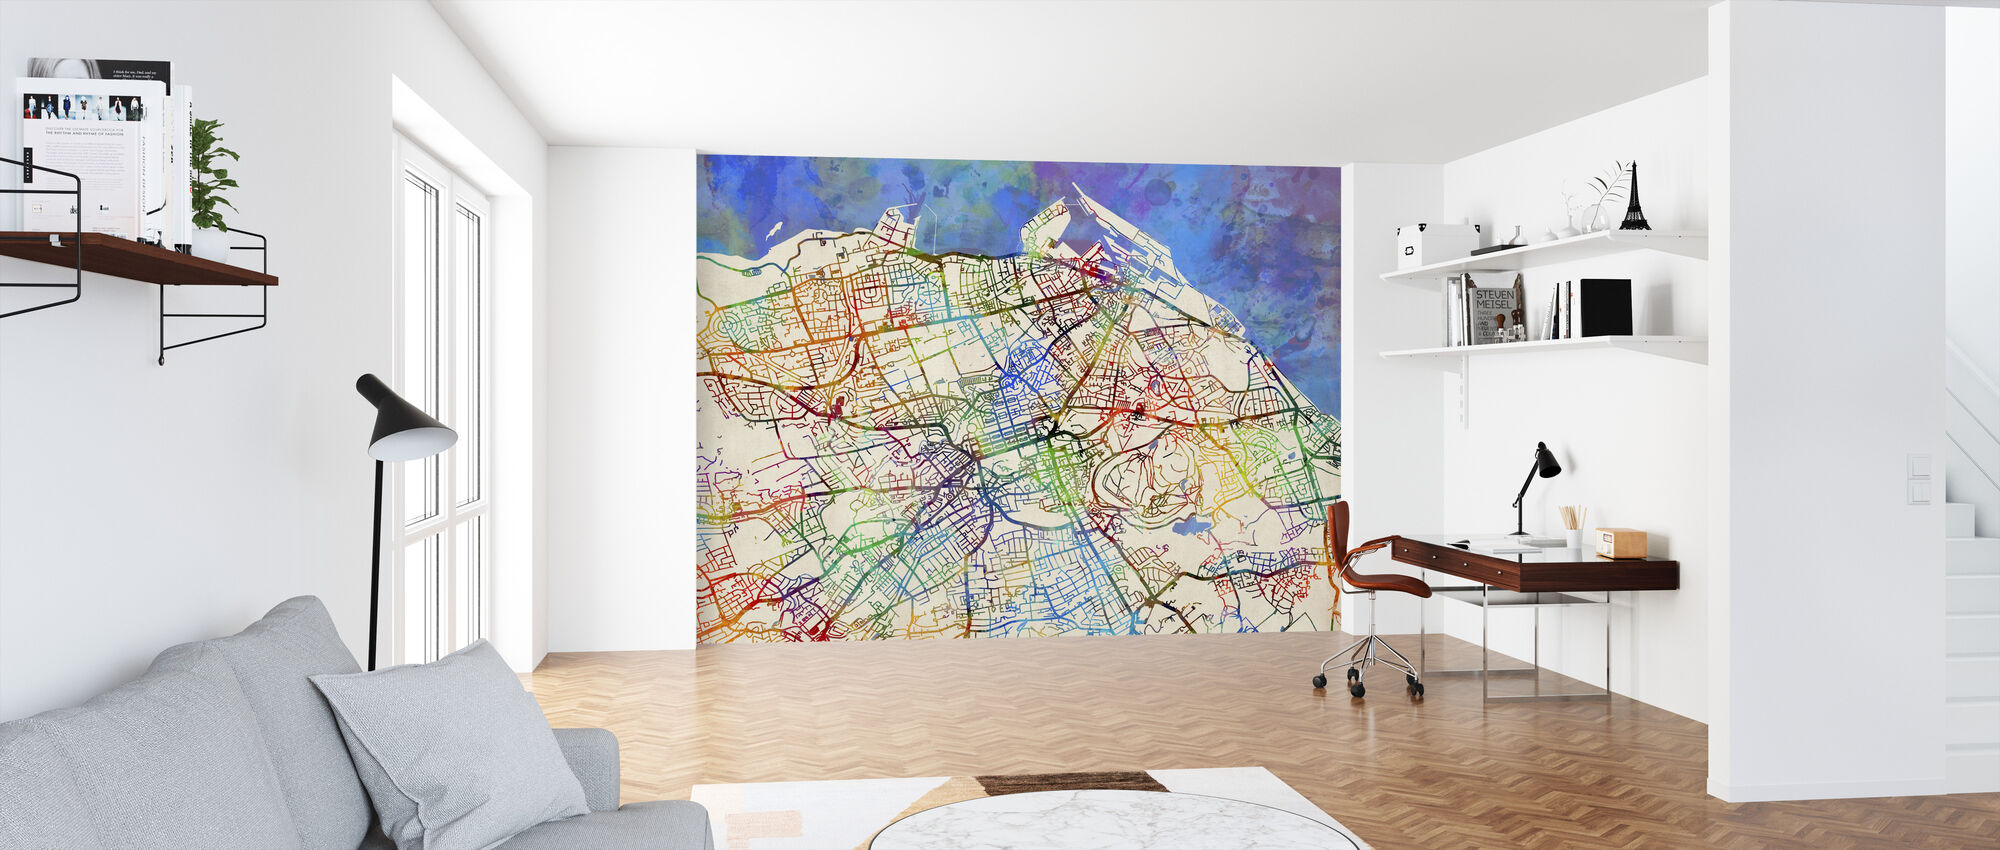 Edinburgh Street Map - Wallpaper - Office